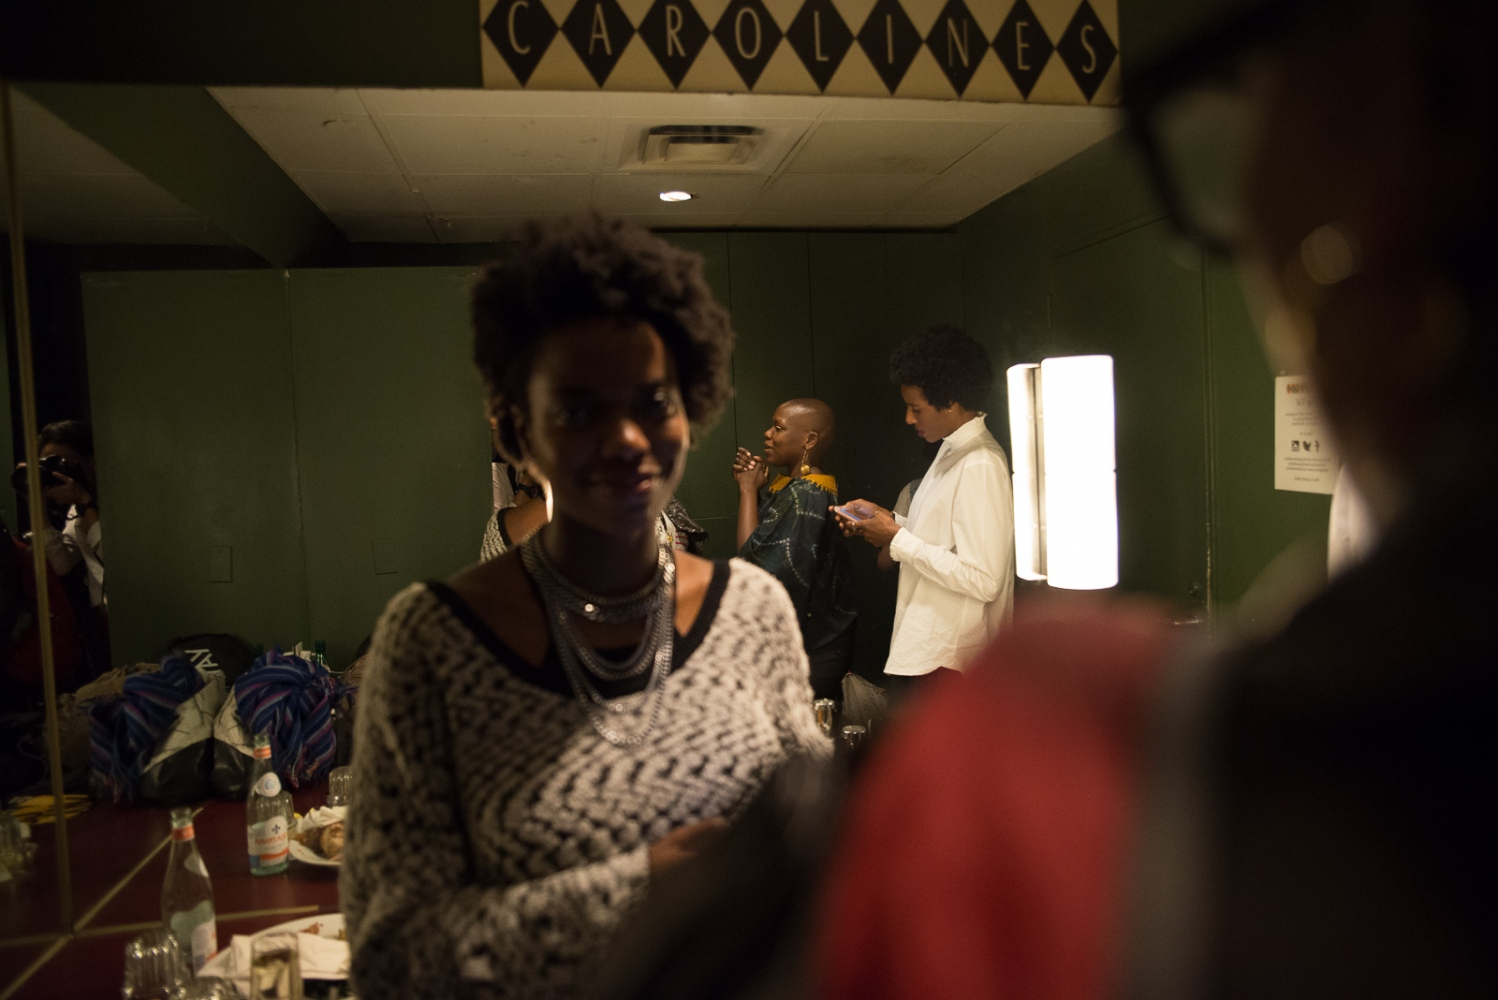 November 2, 2016 - Carolines on Broadway, New York City, United States - Agunda Okeyo with comedians Sasheer Zamata and Zainab Johnson backstage during the Sisters of Comedy Show, part of New York Comedy Festival.